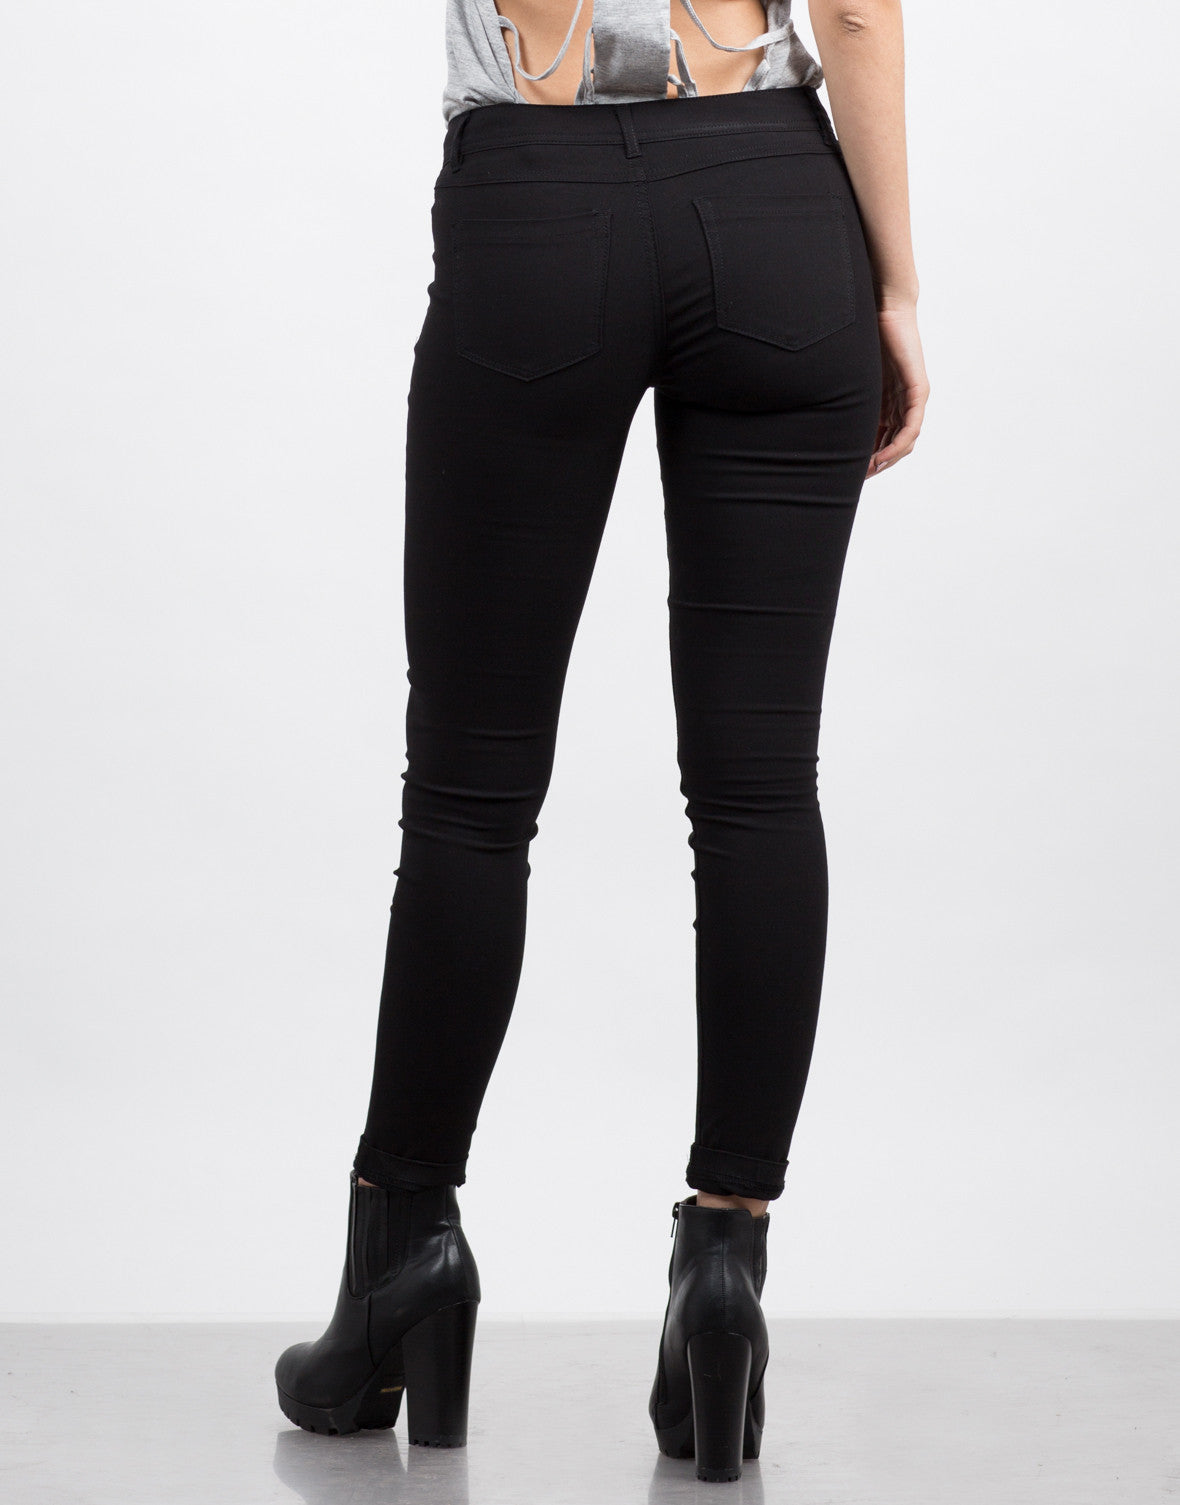 Back View of Basic Stretchy Skinny Pants